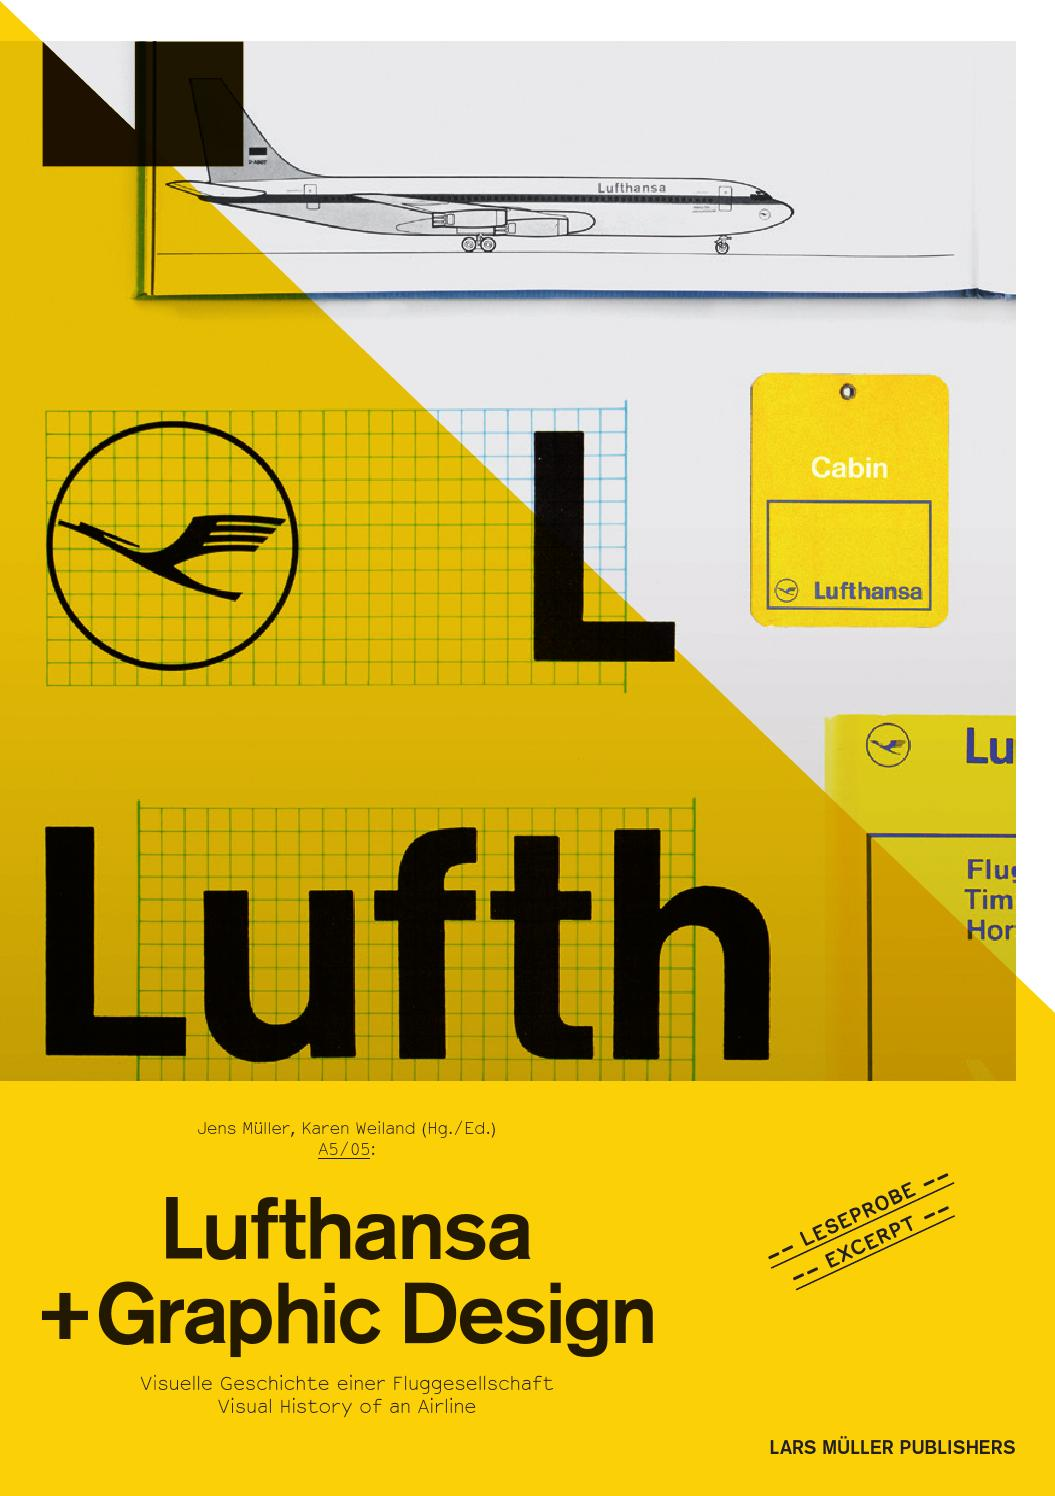 A5/05: Lufthansa+Graphic Design by A5 Graphic Design History - issuu